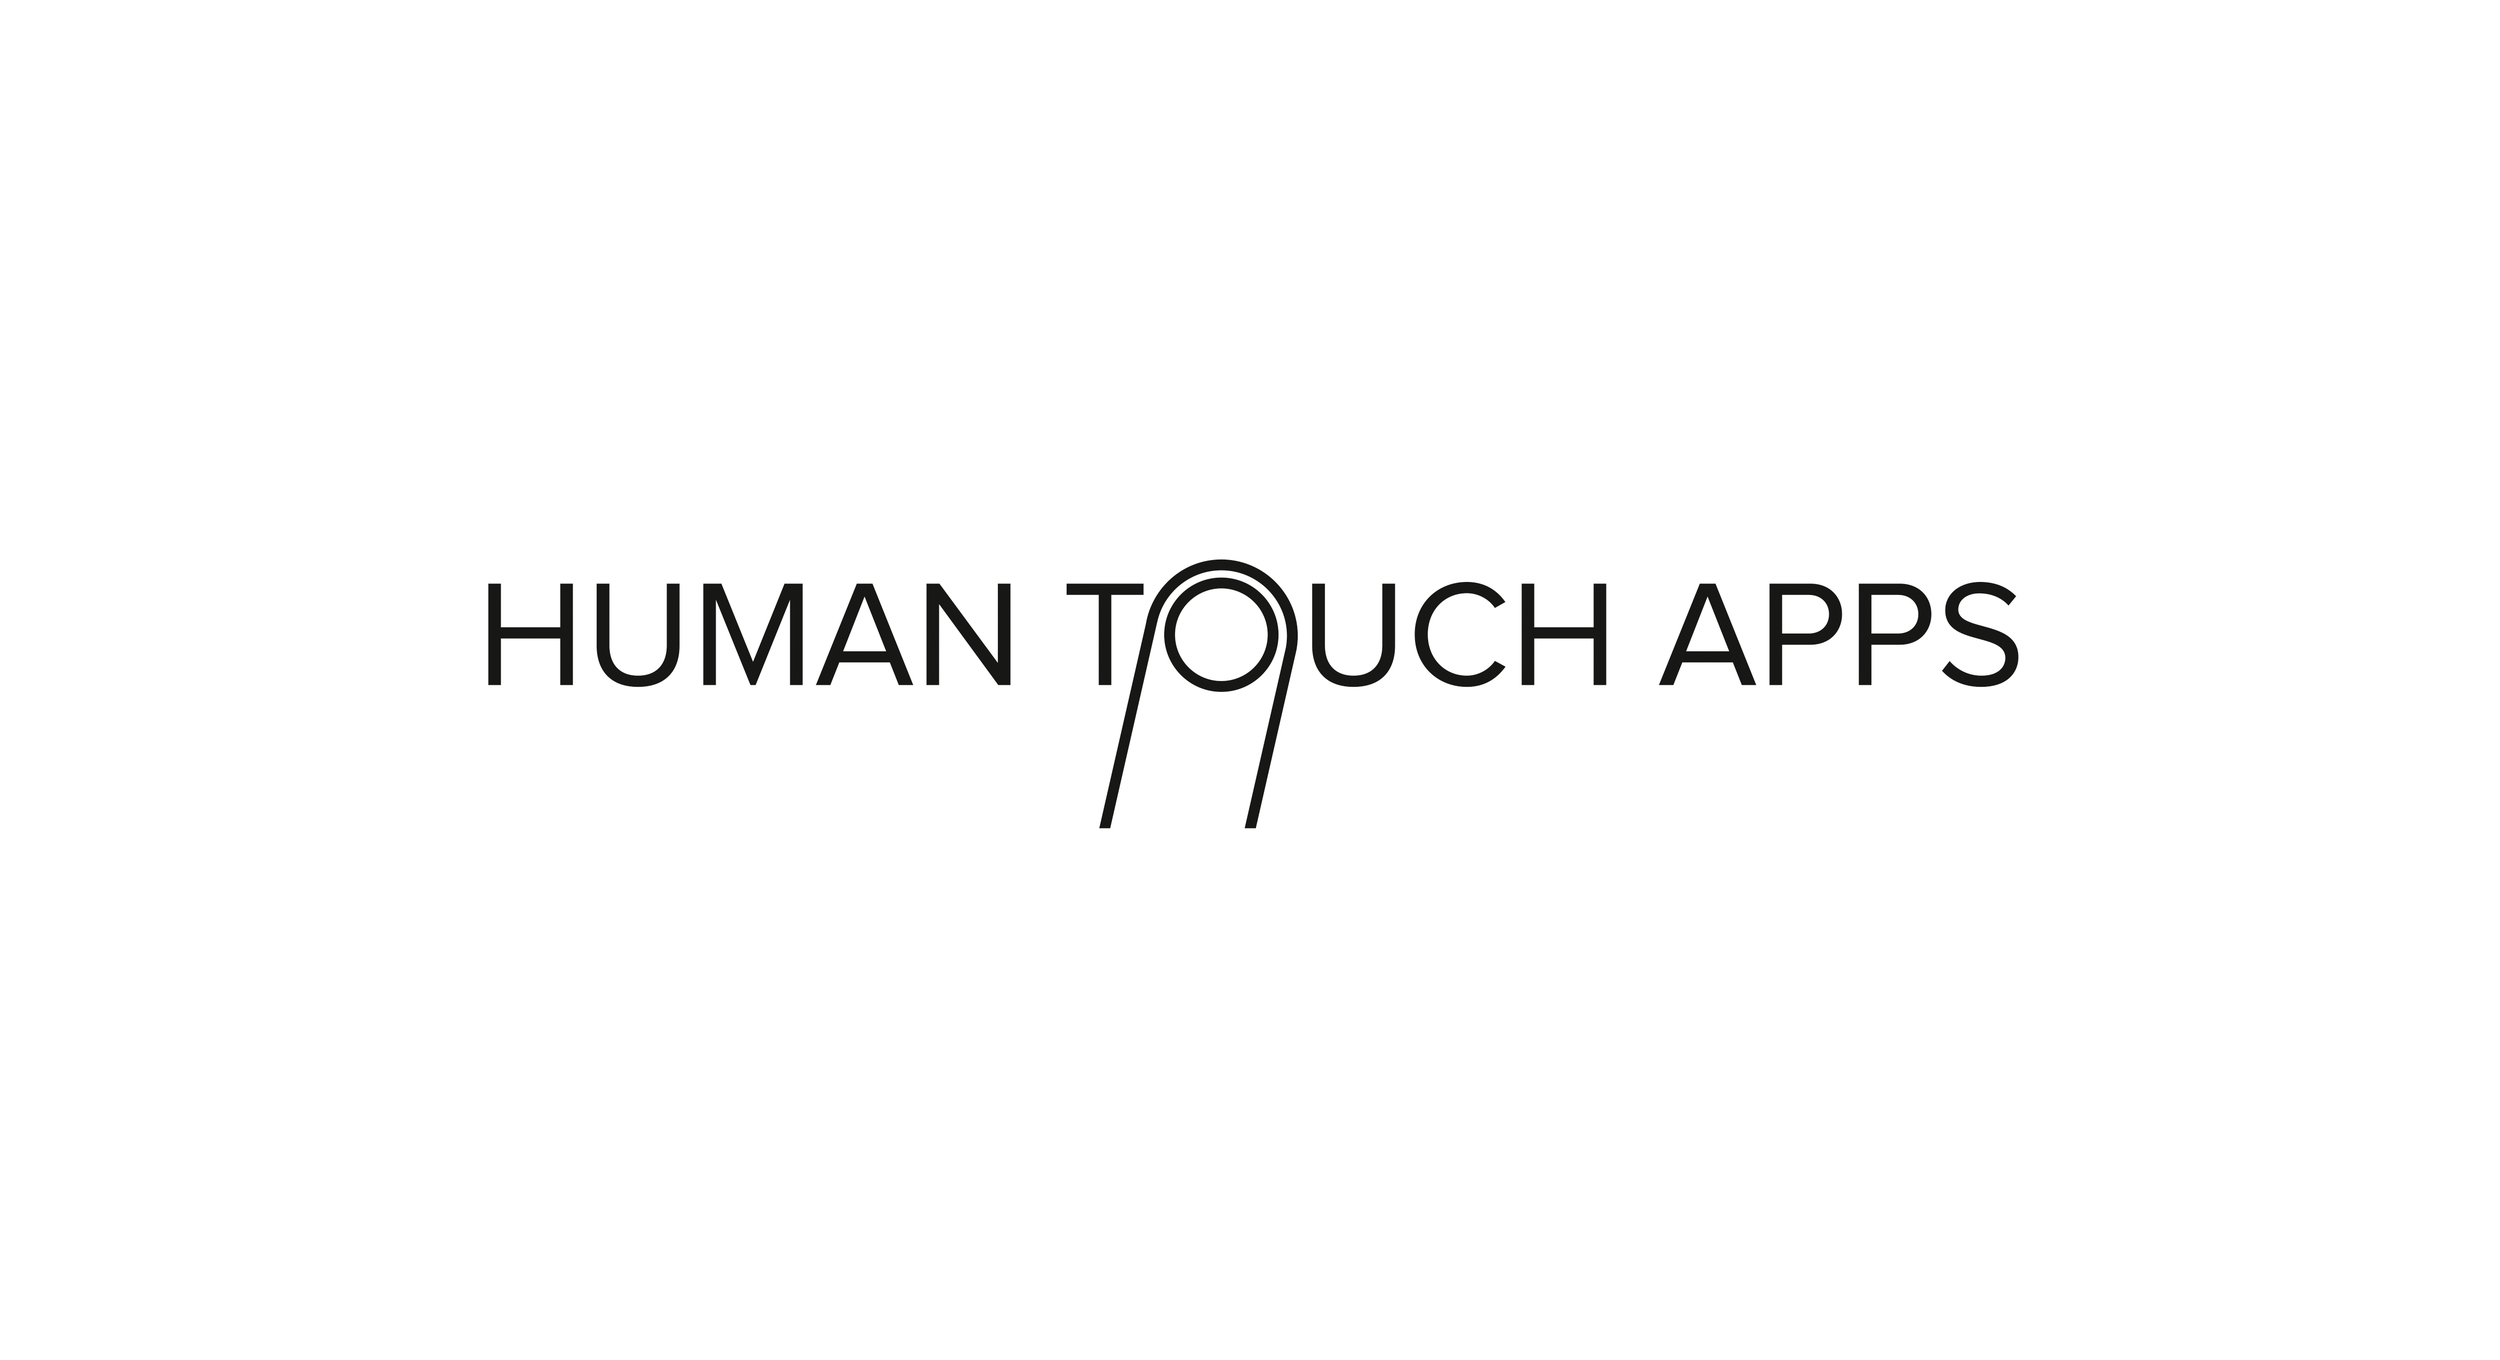 A_HumanTouch_Apps_pos.jpg